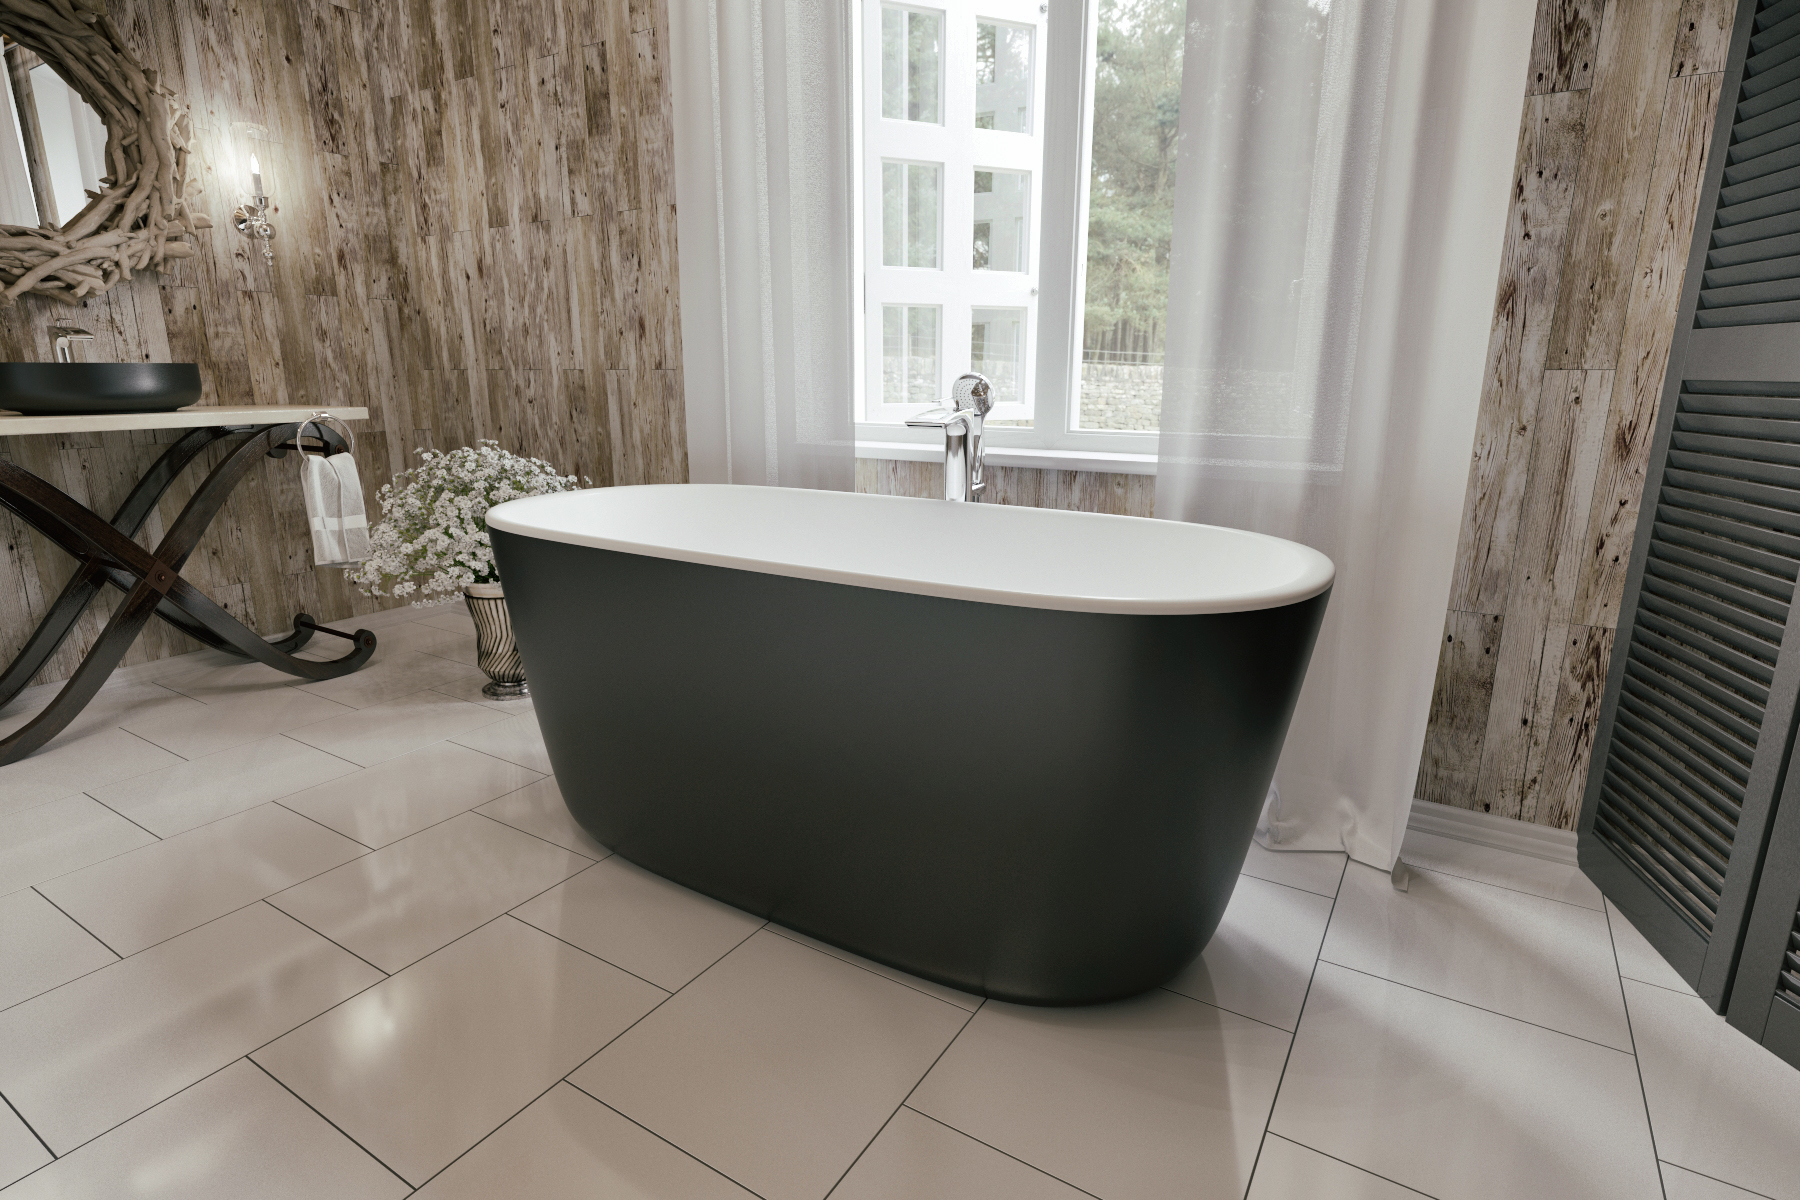 Lullaby Blck Wht Freestanding Solid Surface Bathtub by Aquatica (5)